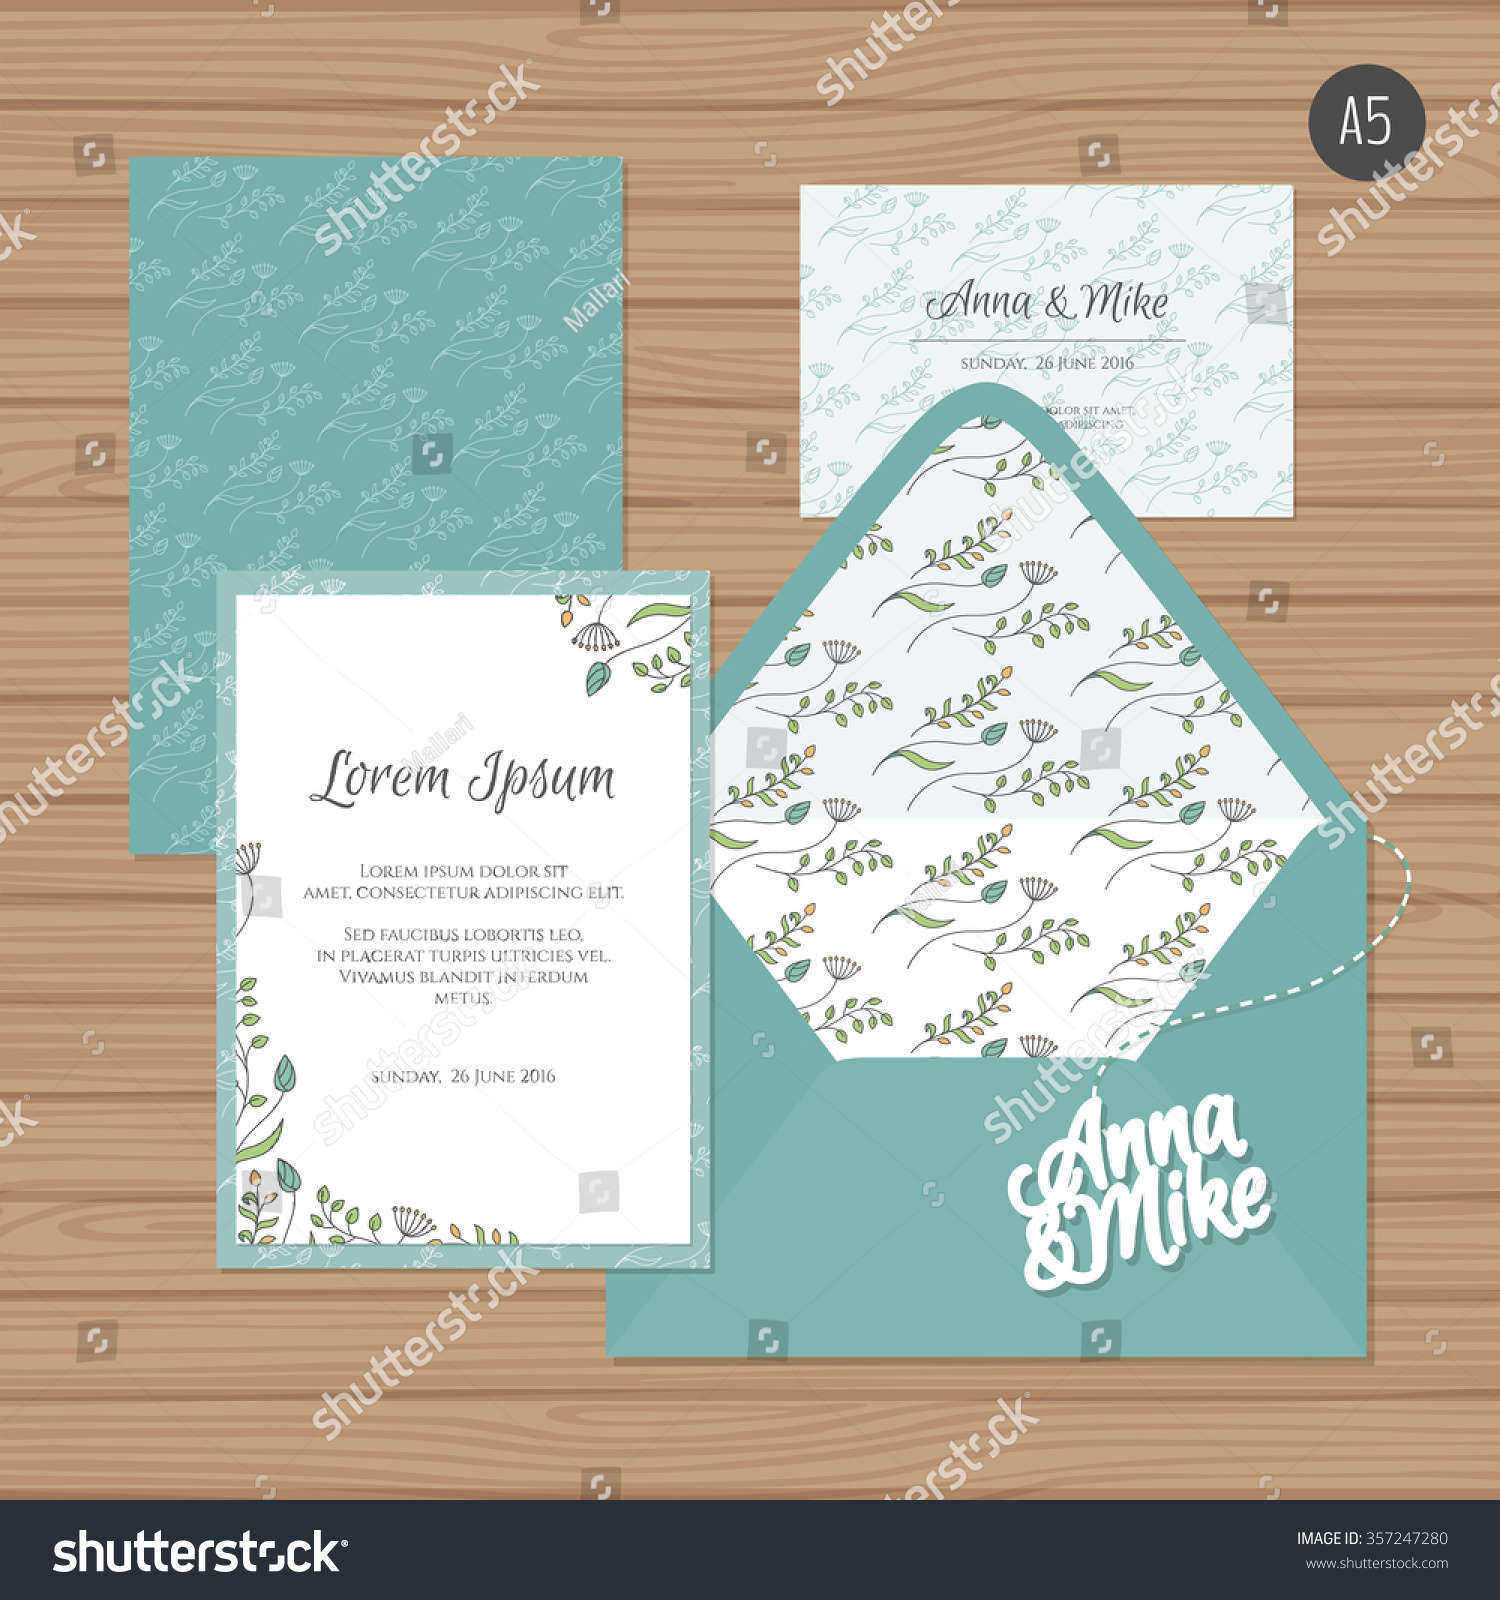 Template Wedding Invitation And Envelope With Floral